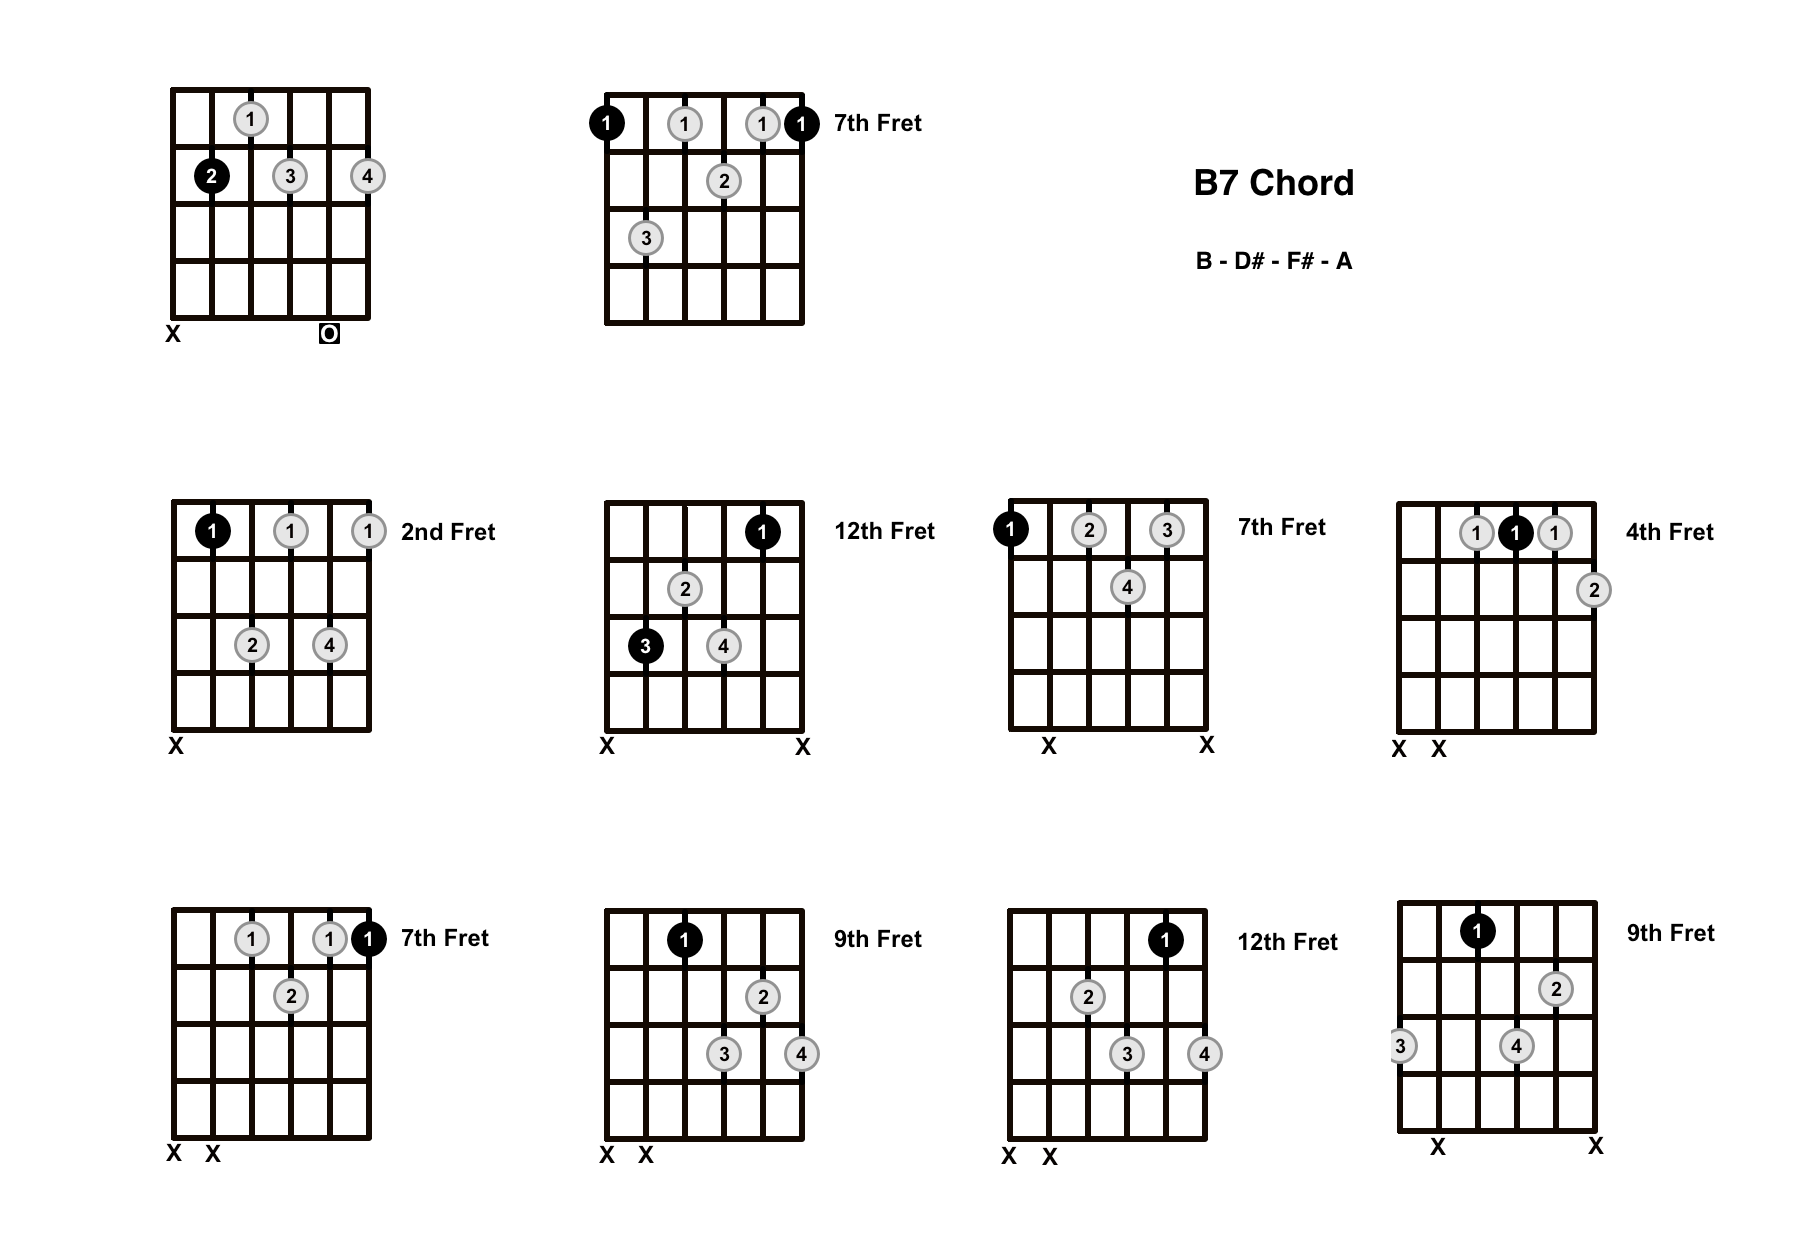 B7 Chord On The Guitar (B Dominant 7) – Diagrams, Finger Positions and Theory